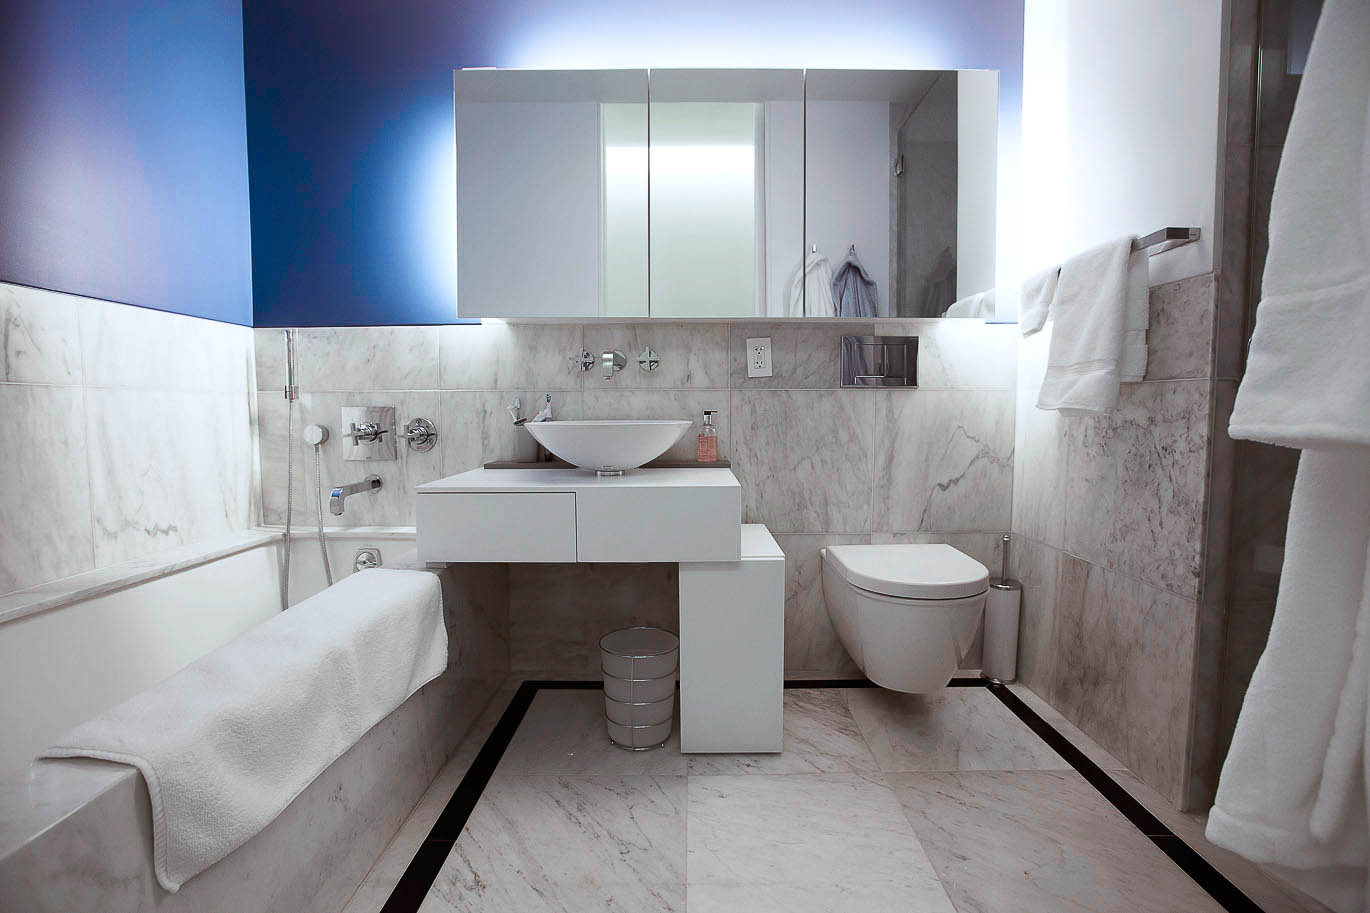 Designed by NYC's best architects and executed by MagnaPro Construction 0 these bathroom renovations use only top of the line materials